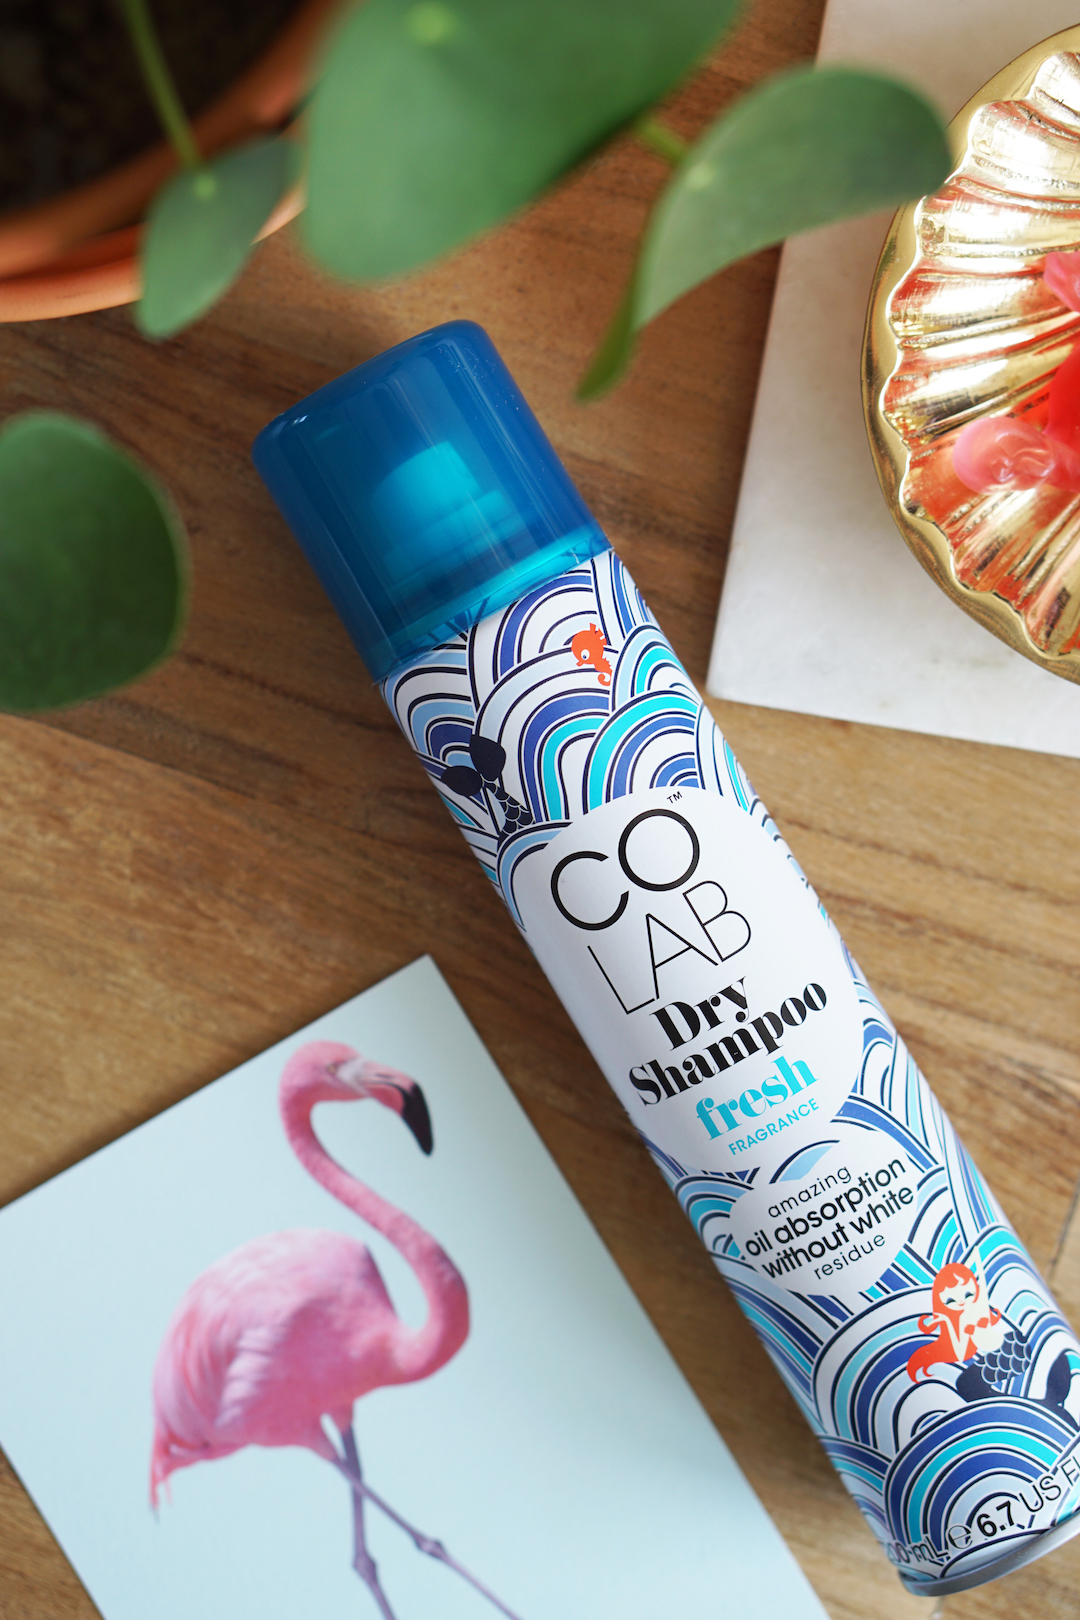 COLAB Dry Shampoo Active, Fresh, Tropical & Paradise